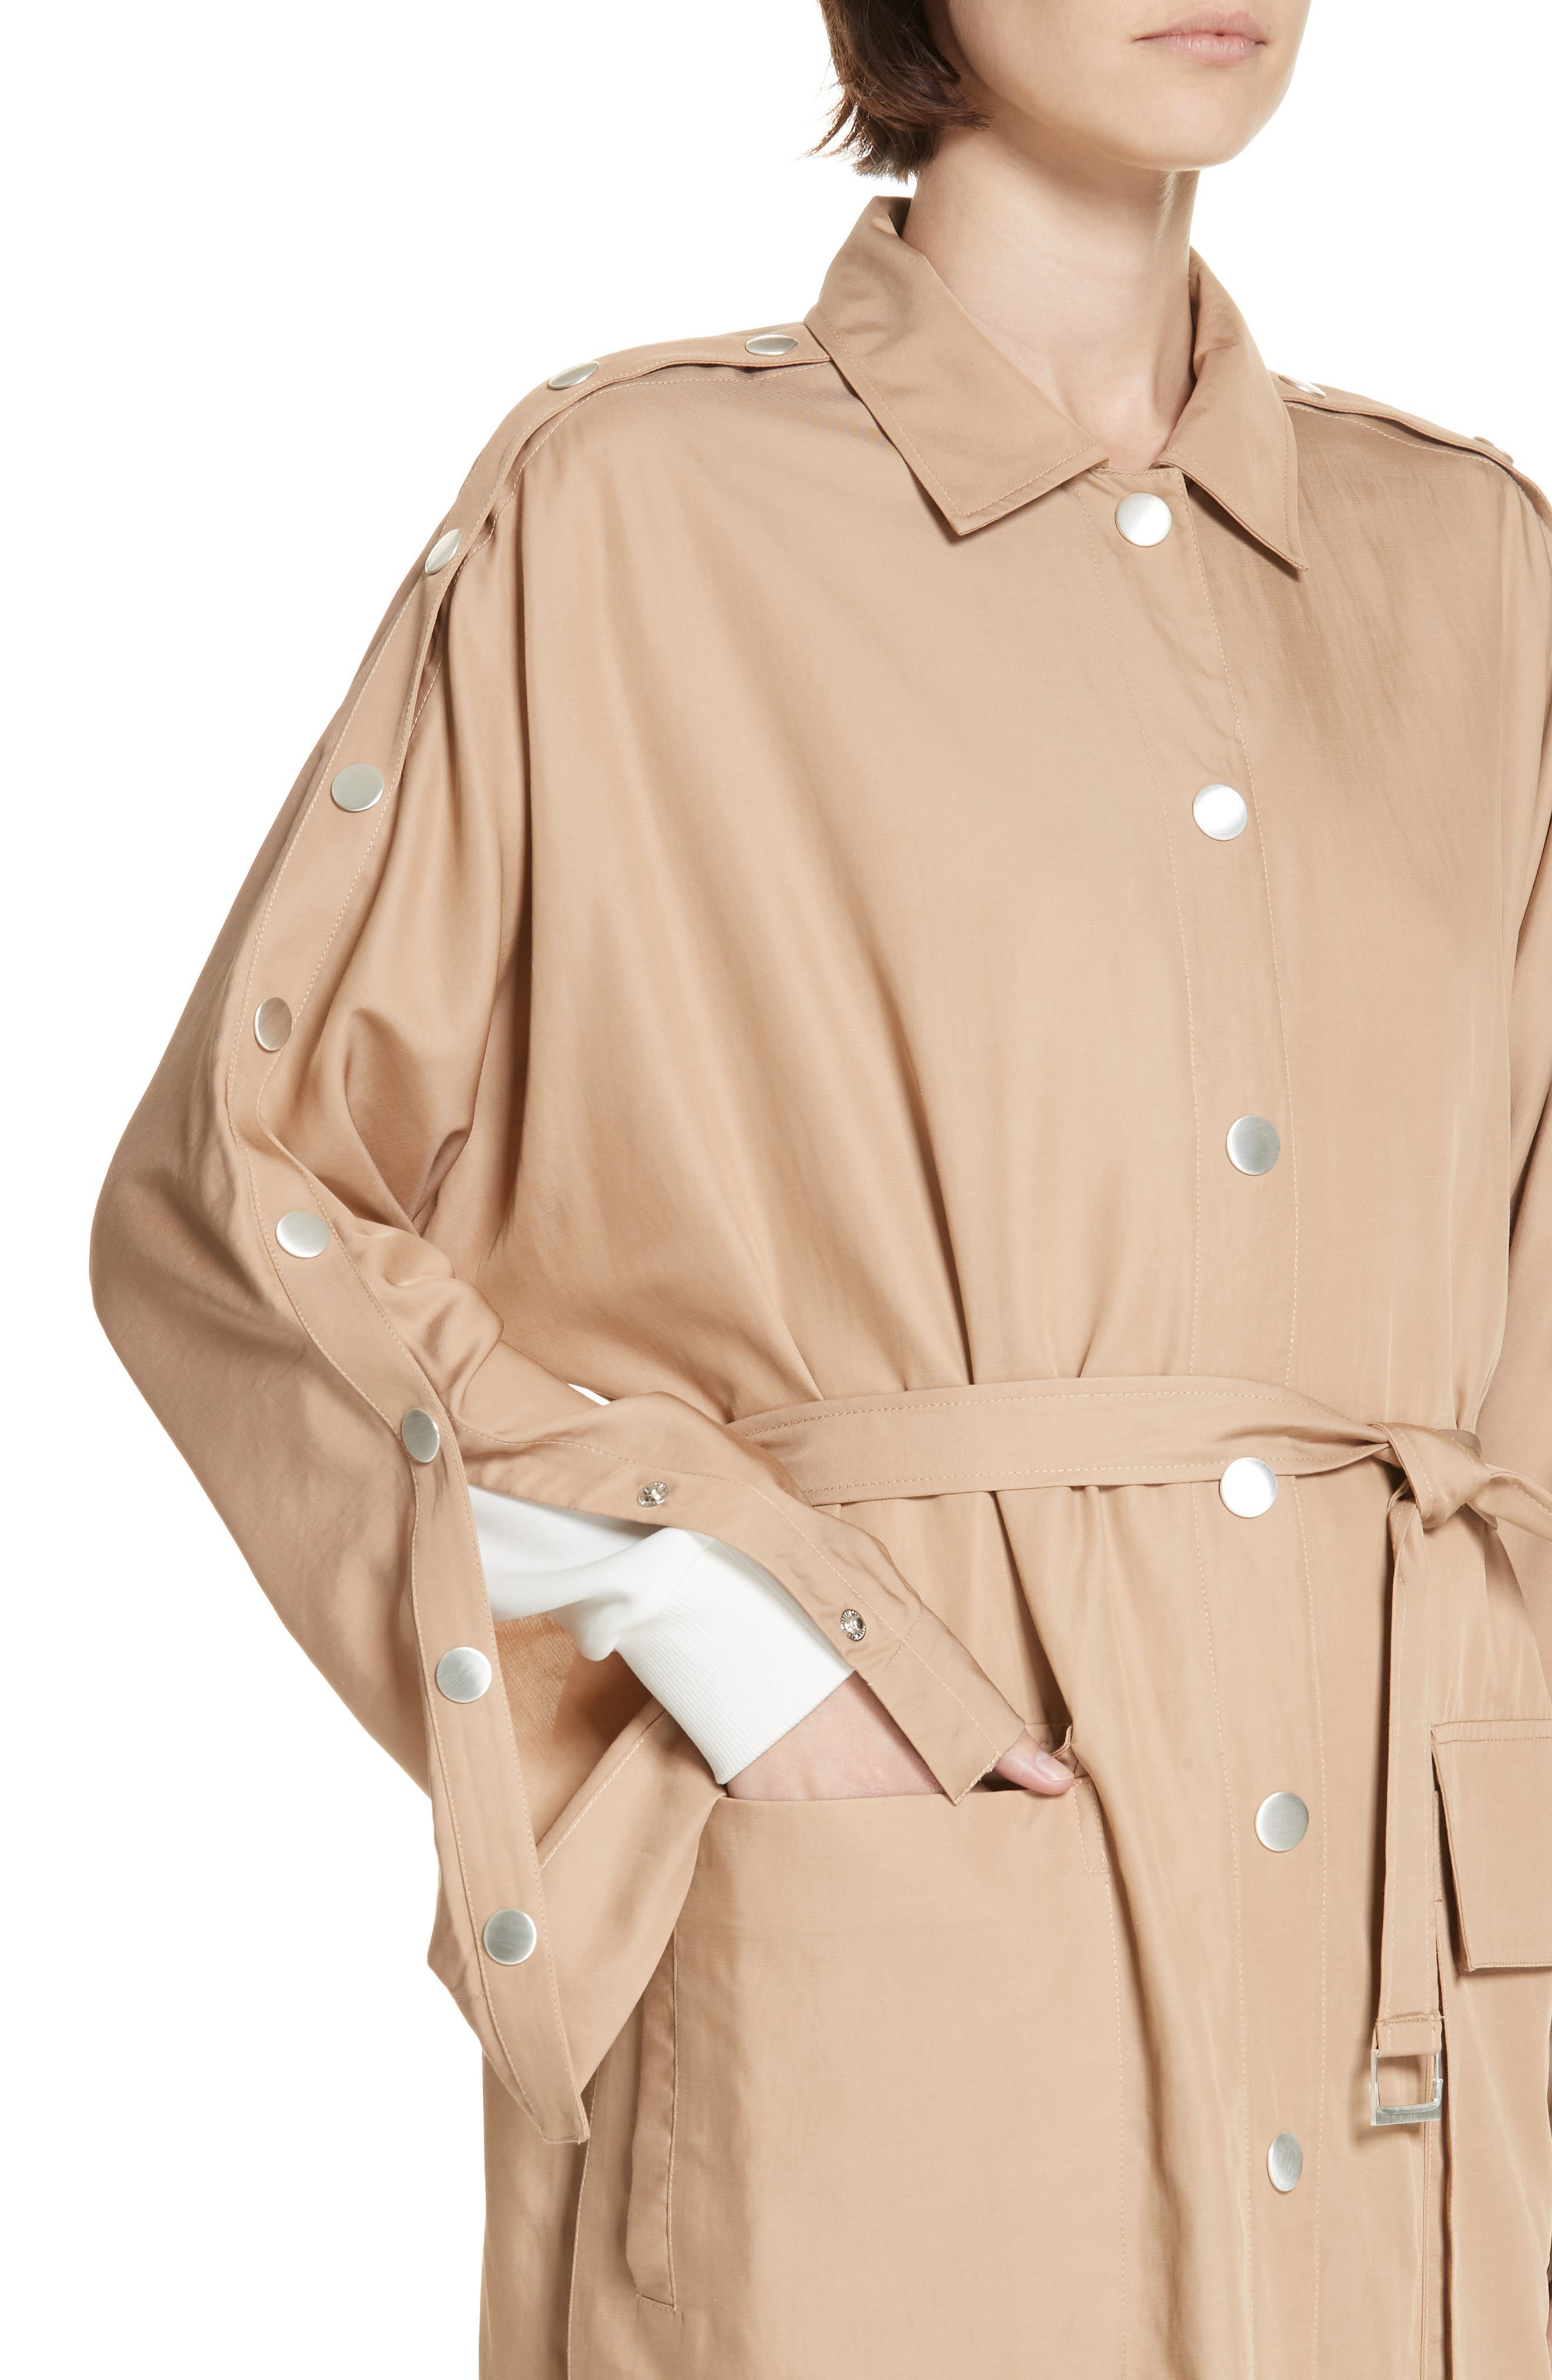 Snap Detail Trench Coat,                             Alternate thumbnail 4, color,                             200